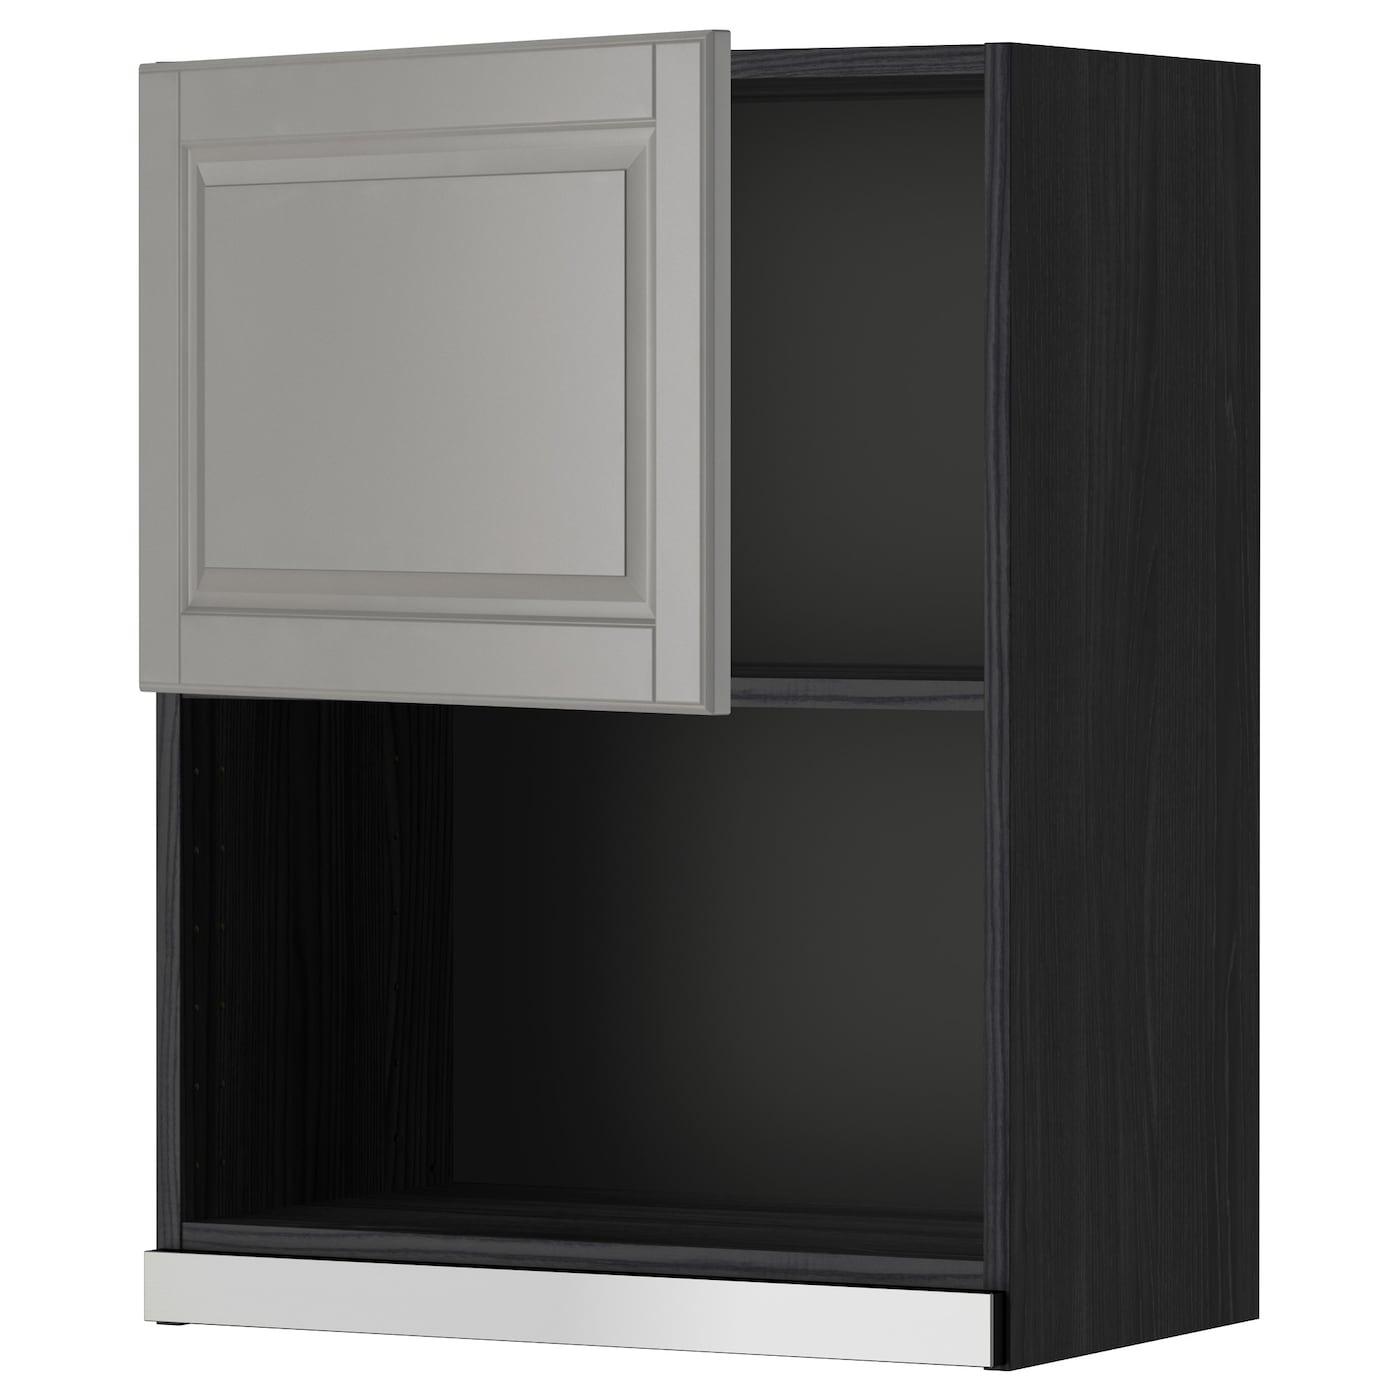 Ikea Kitchen Microwave Cabinet: METOD Wall Cabinet For Microwave Oven Black/bodbyn Grey 60